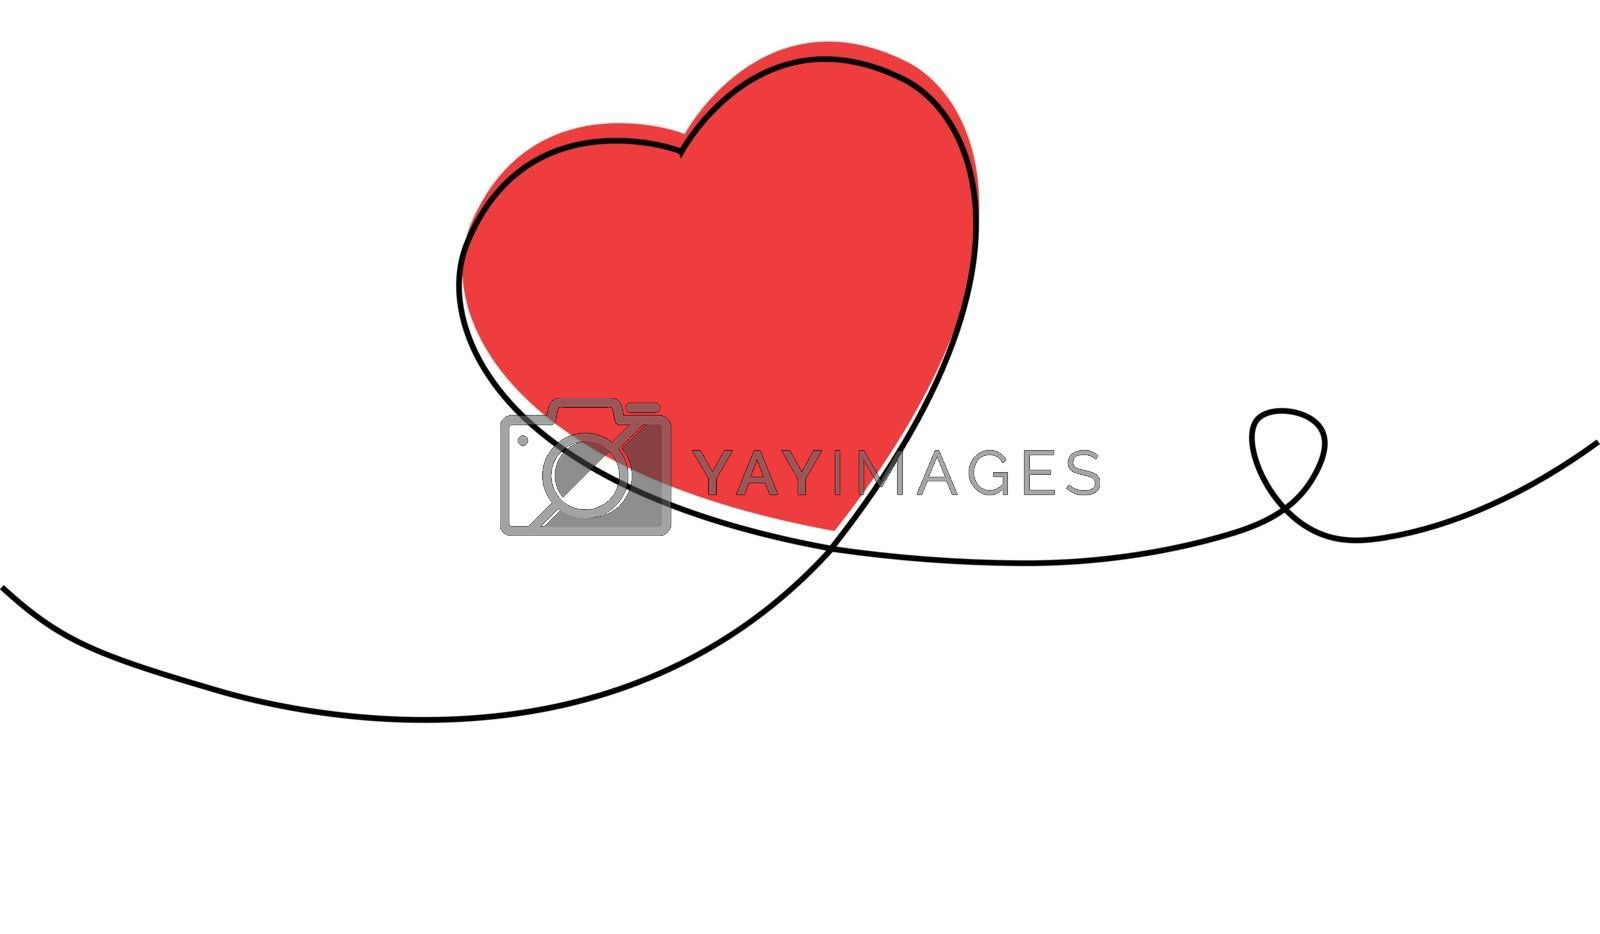 Continuous one line drawing of red heart isolated on white background. EPS10 vector illustration for banner, template, poster, web, app, valentine's card, wedding. Black thin line image of heart icon.